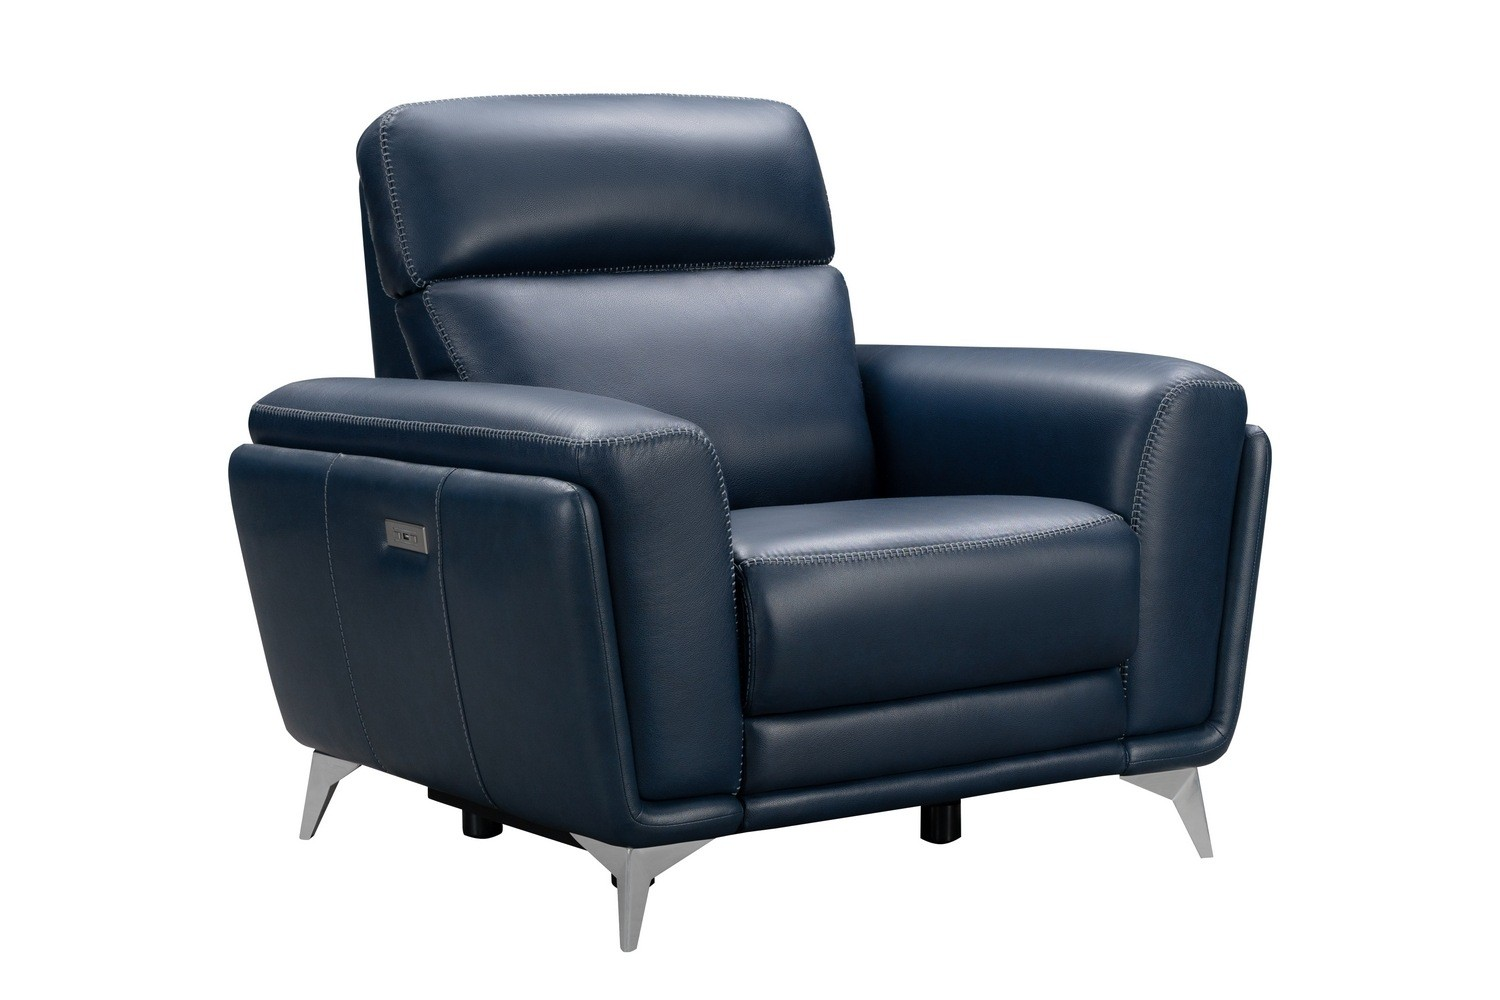 Barcalounger Cameron Power Recliner Chair with Power Head Rest - Marco Navy Blue/Leather Match